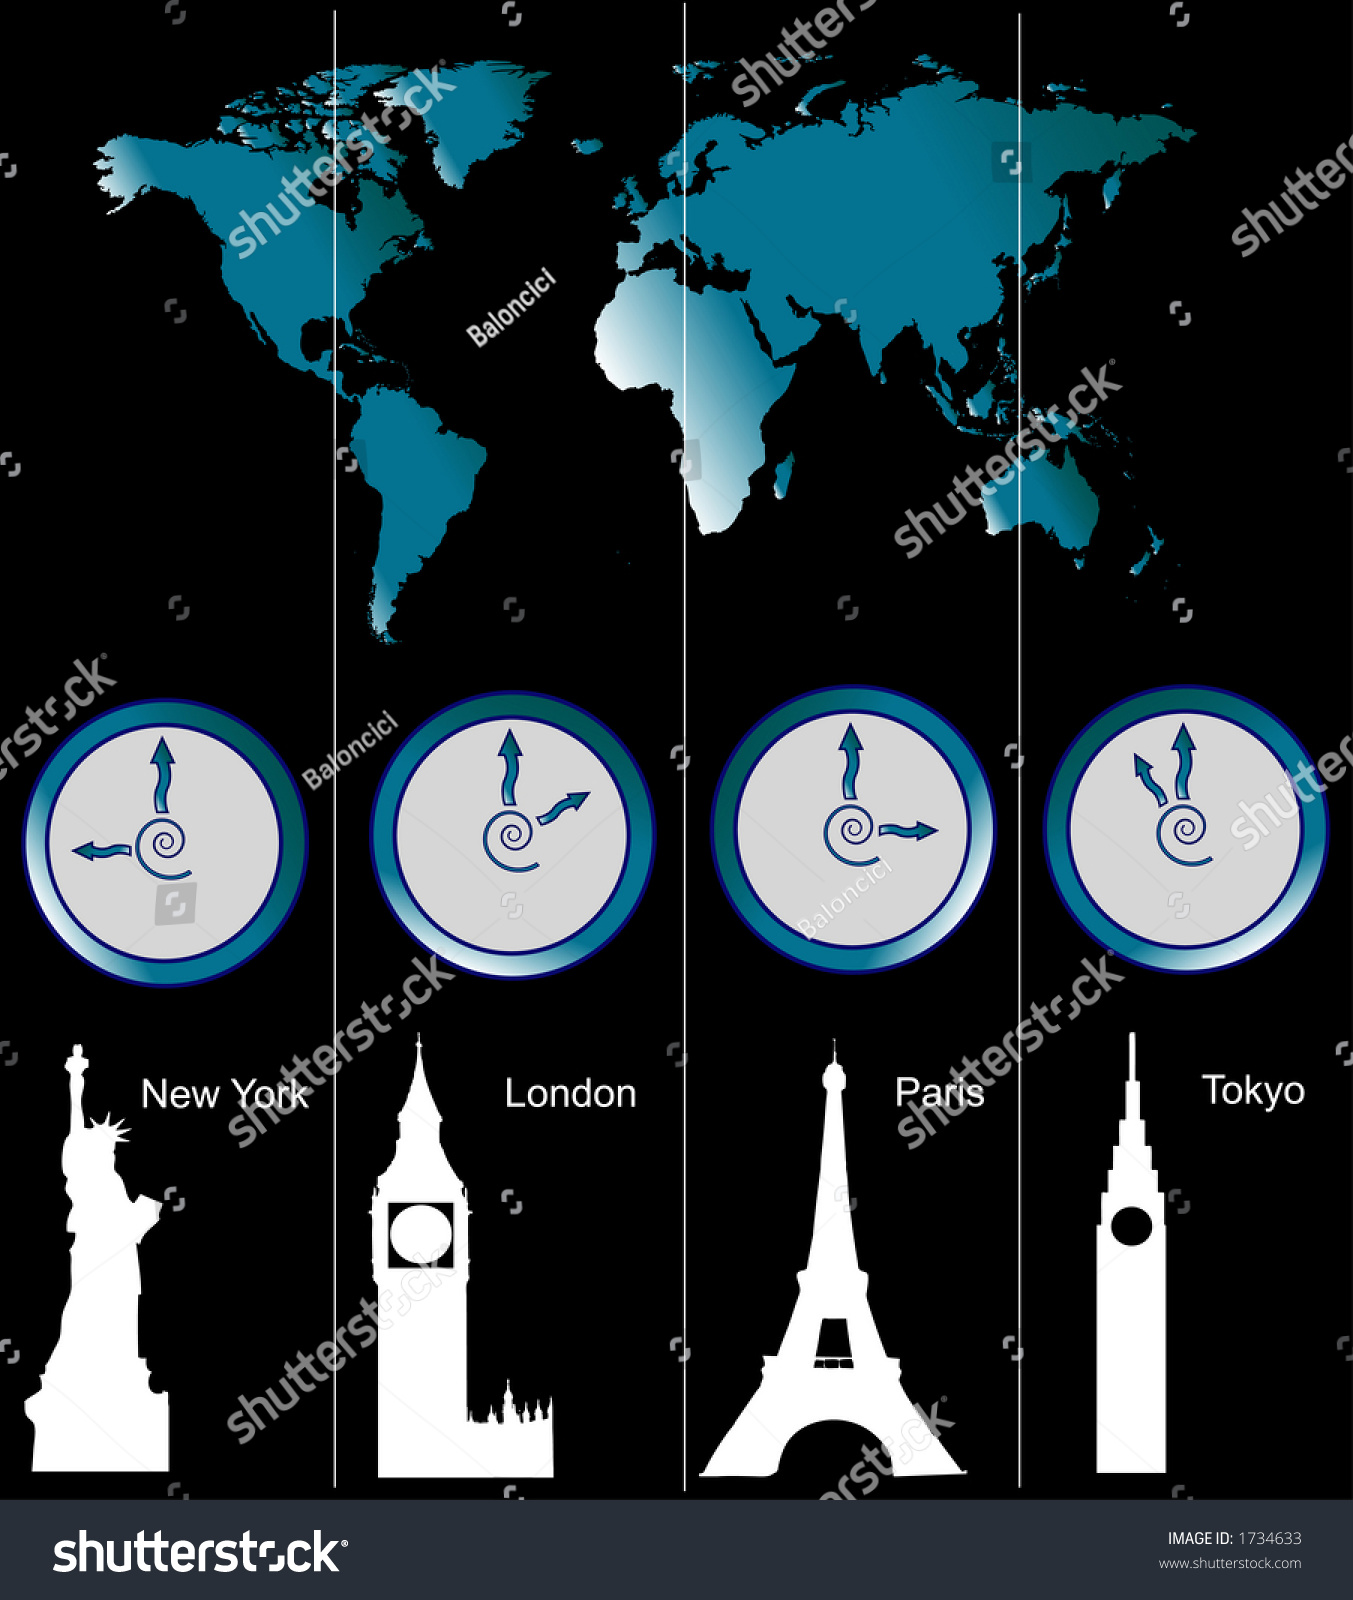 Image world map clocks showing time stock illustration 1734633 image of a world map with clocks showing time of four cities new york gumiabroncs Choice Image